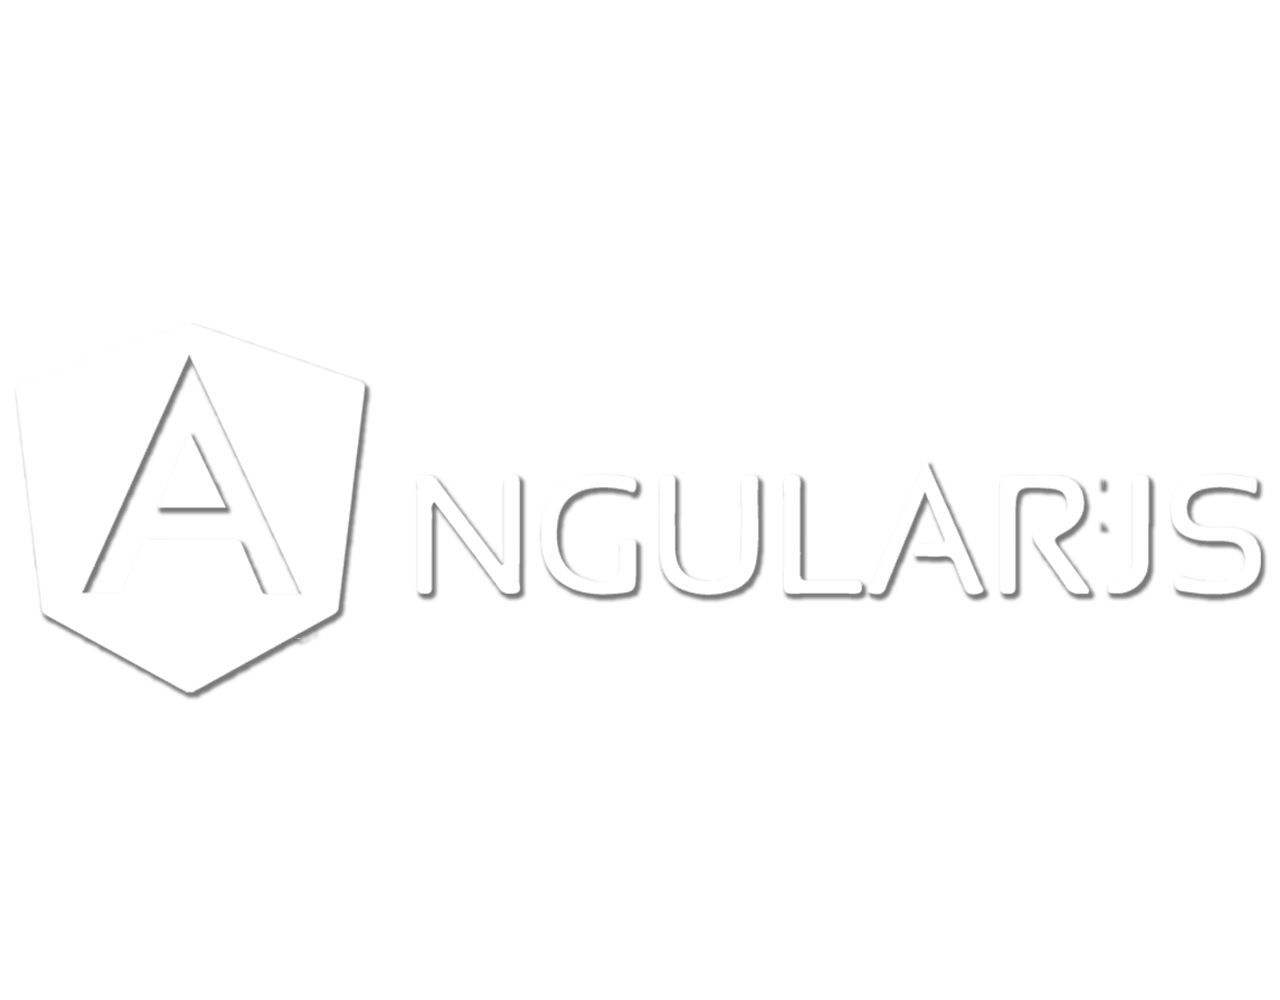 Logo AngularJS Transparent Full Stack Page Metas